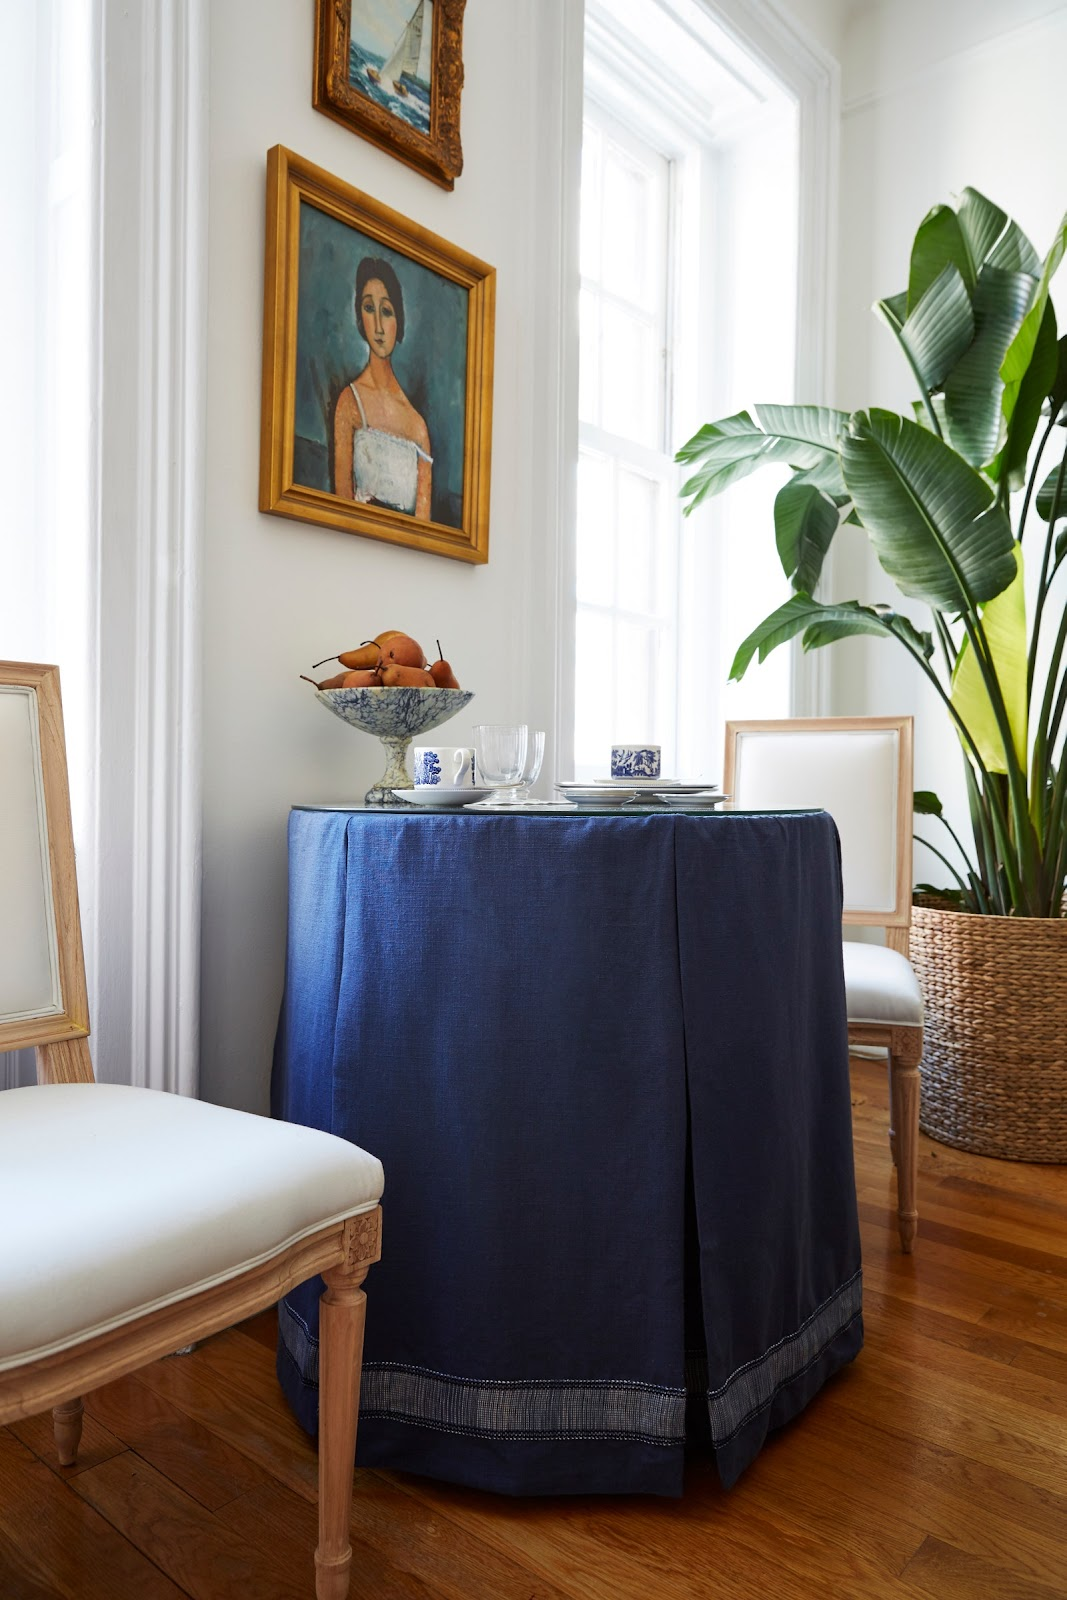 "Café at home... feels so good | https://www.architecturaldigest.com/<span class=""-mobiledoc-kit__atom"">‌‌</span>"